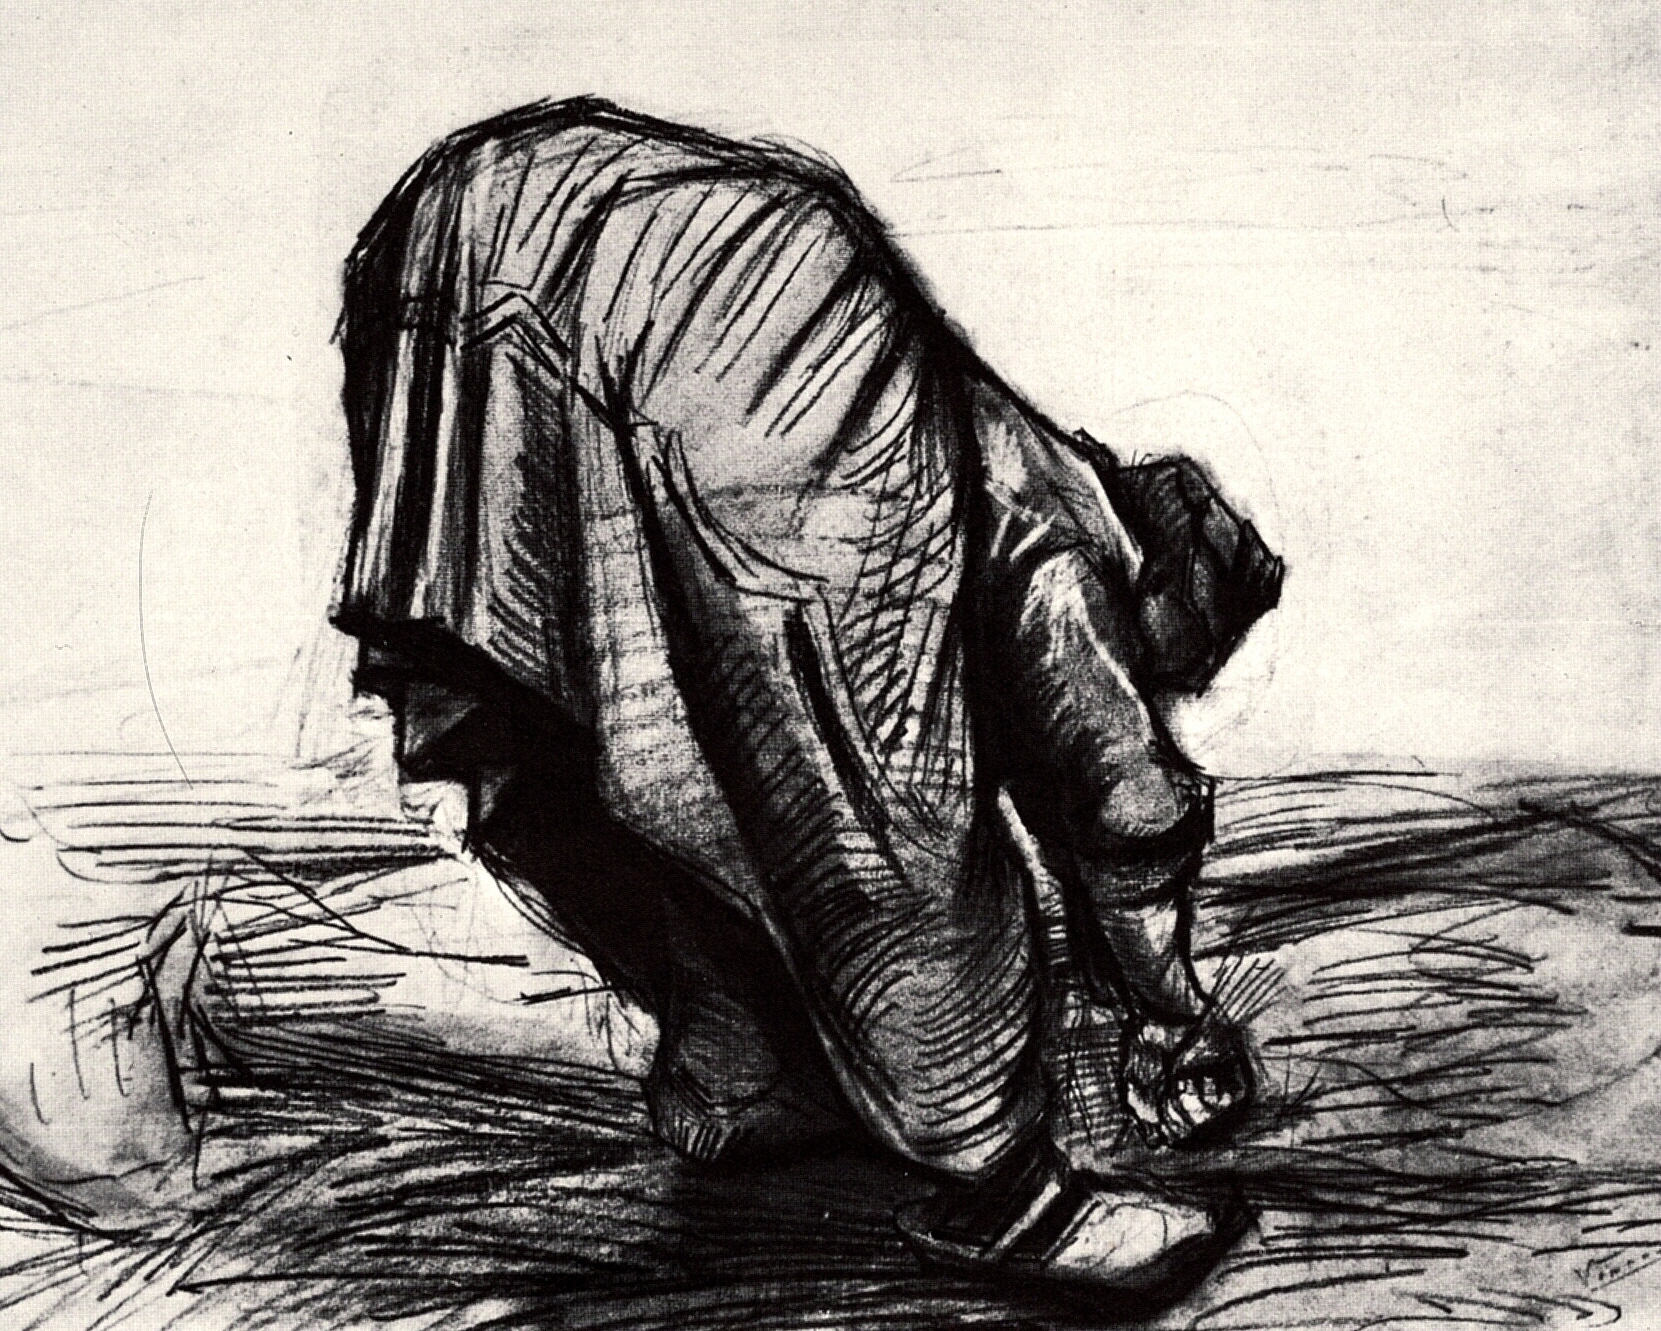 Peasant Woman, Stooping, Seen from the Back by Vincent Van